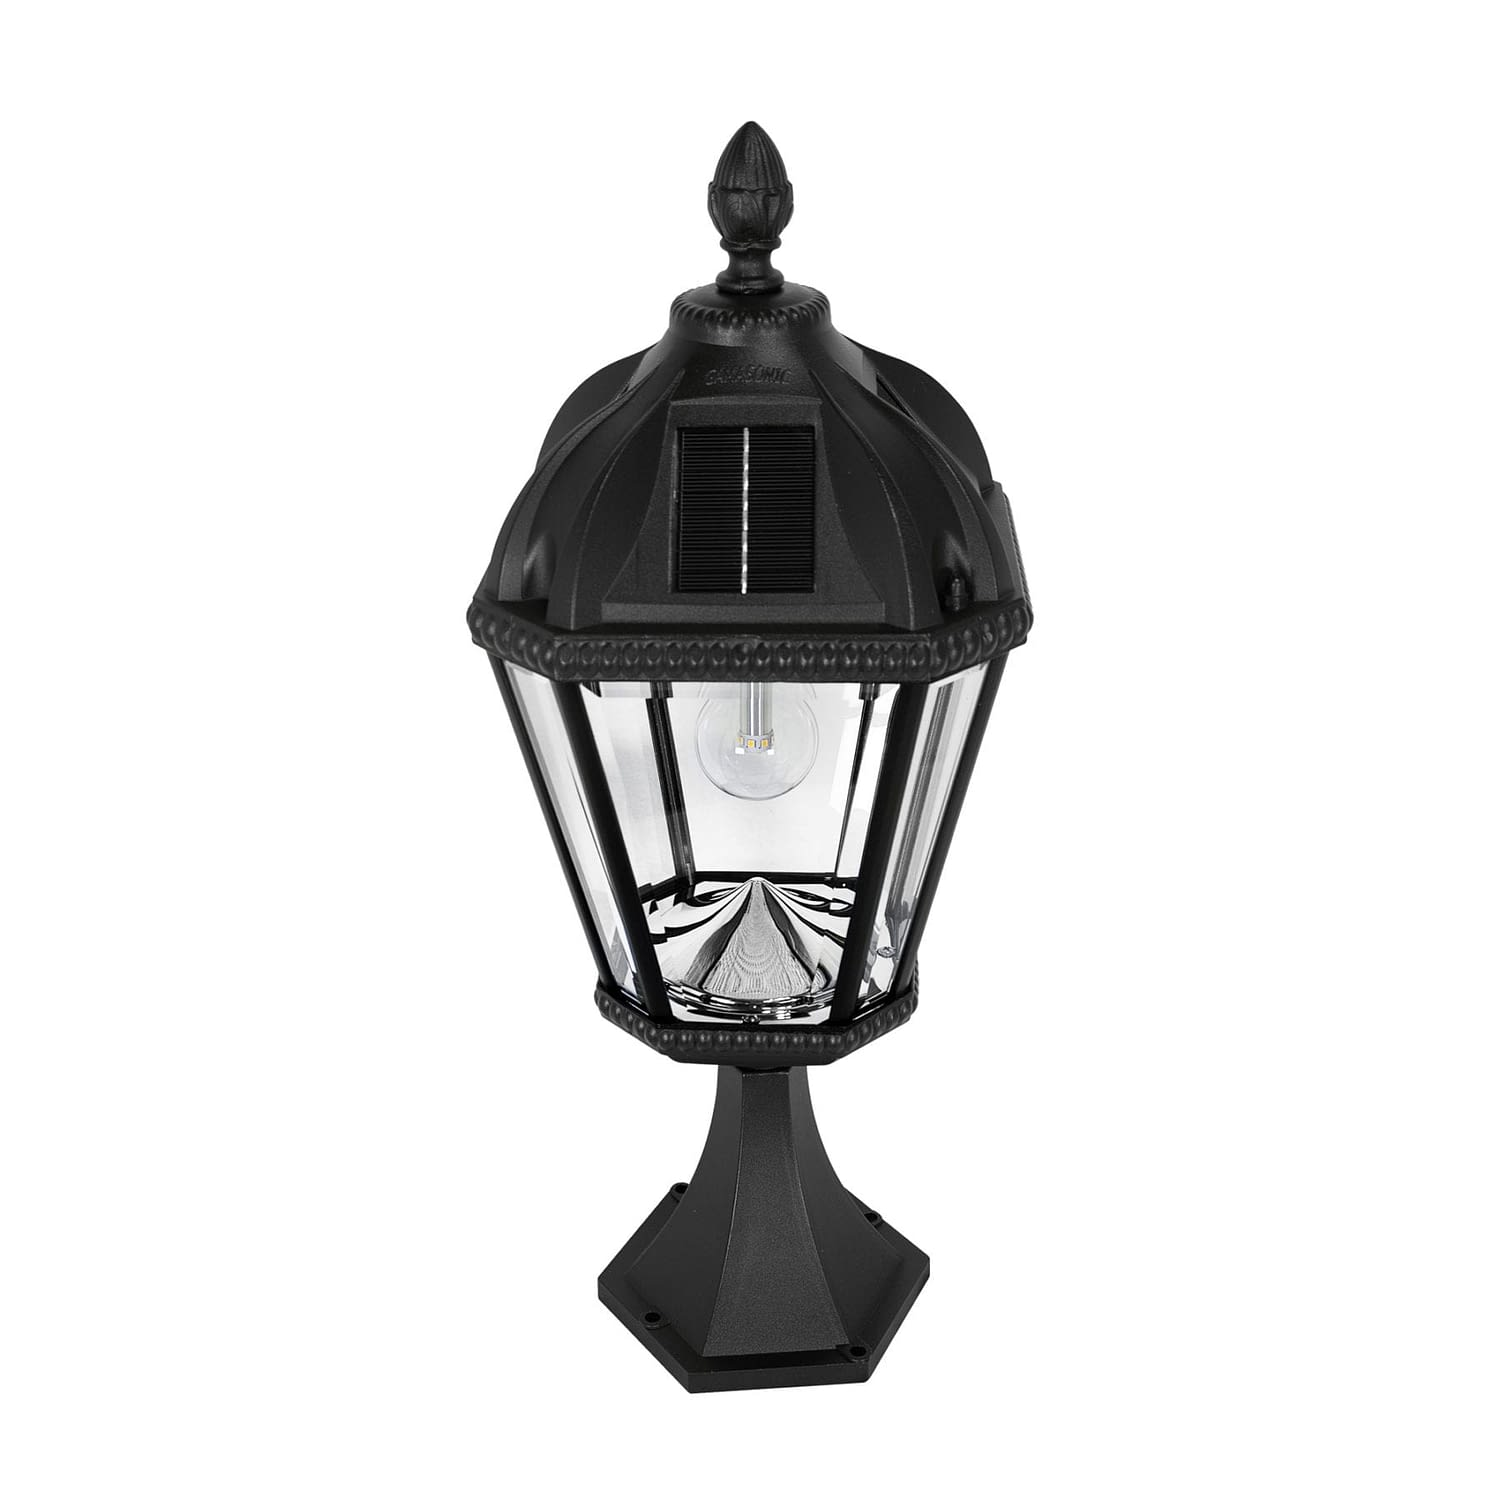 Royal Bulb Pier Mount Solar Lamp